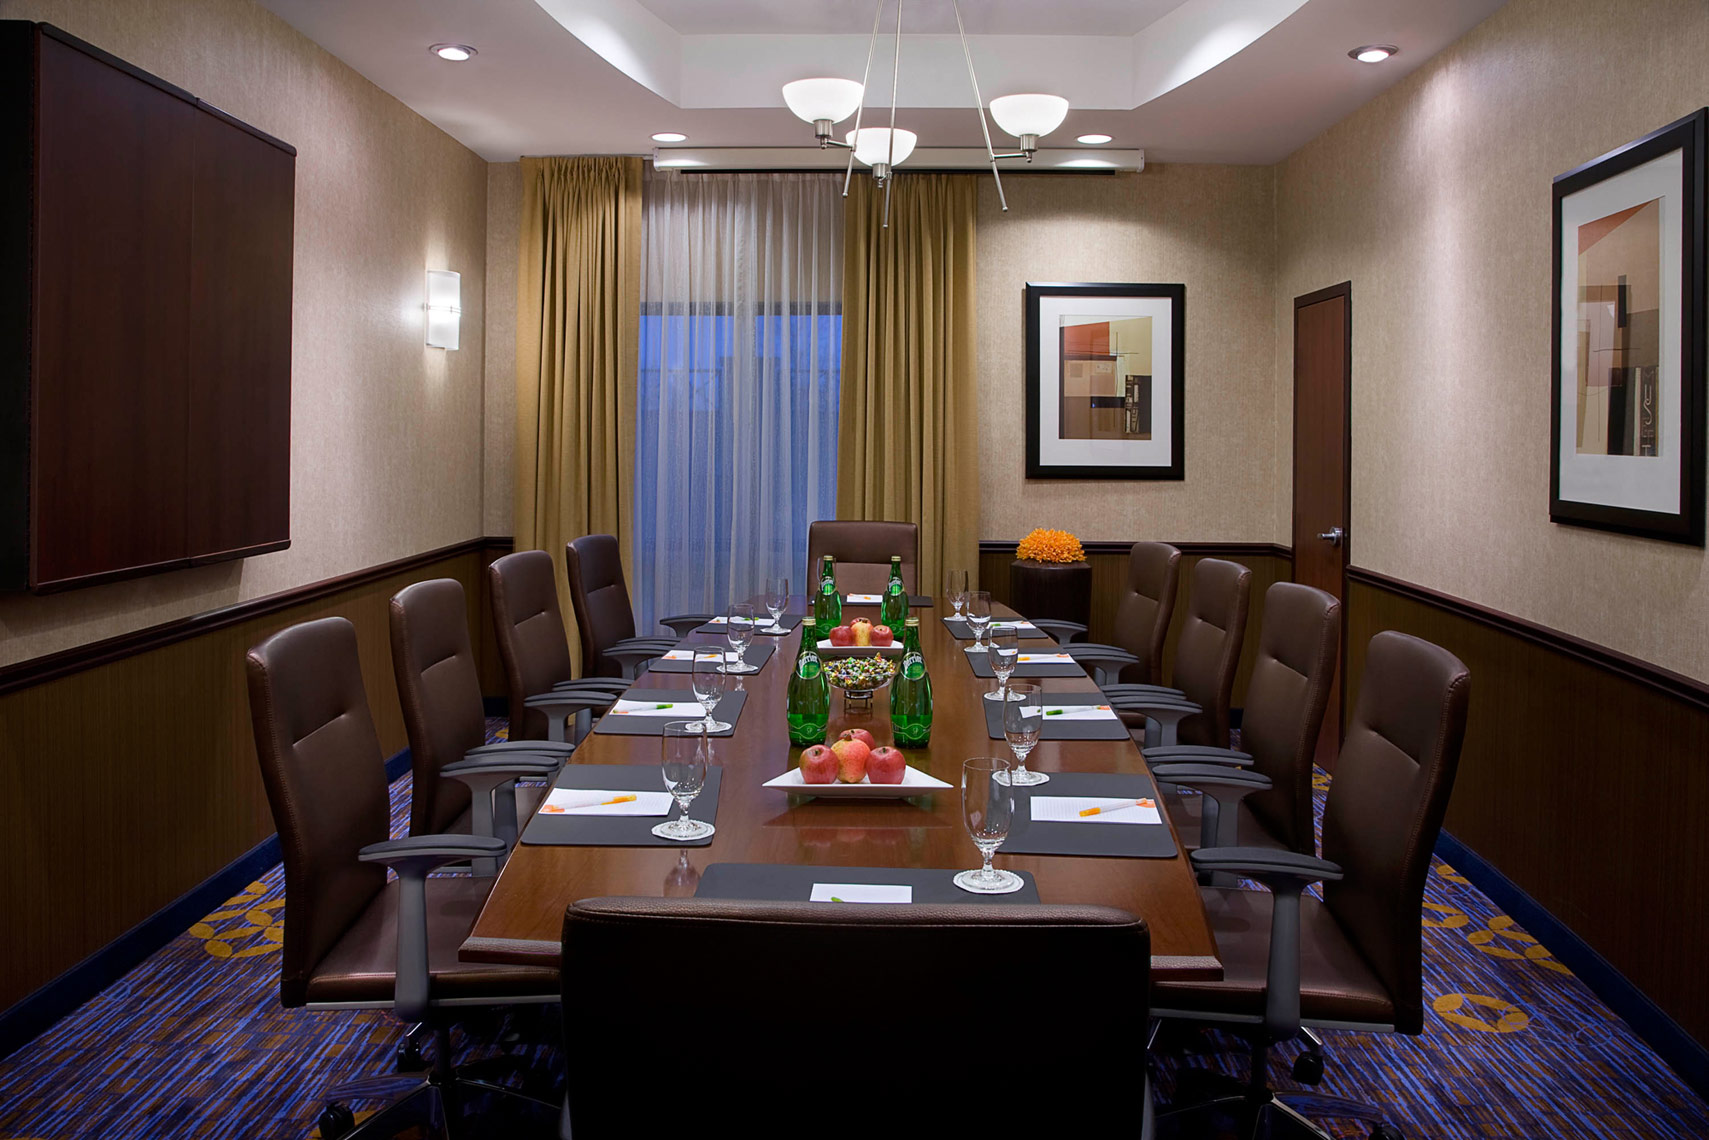 Hospitality-Hotel-Boardroom-Marriot-Courtyard